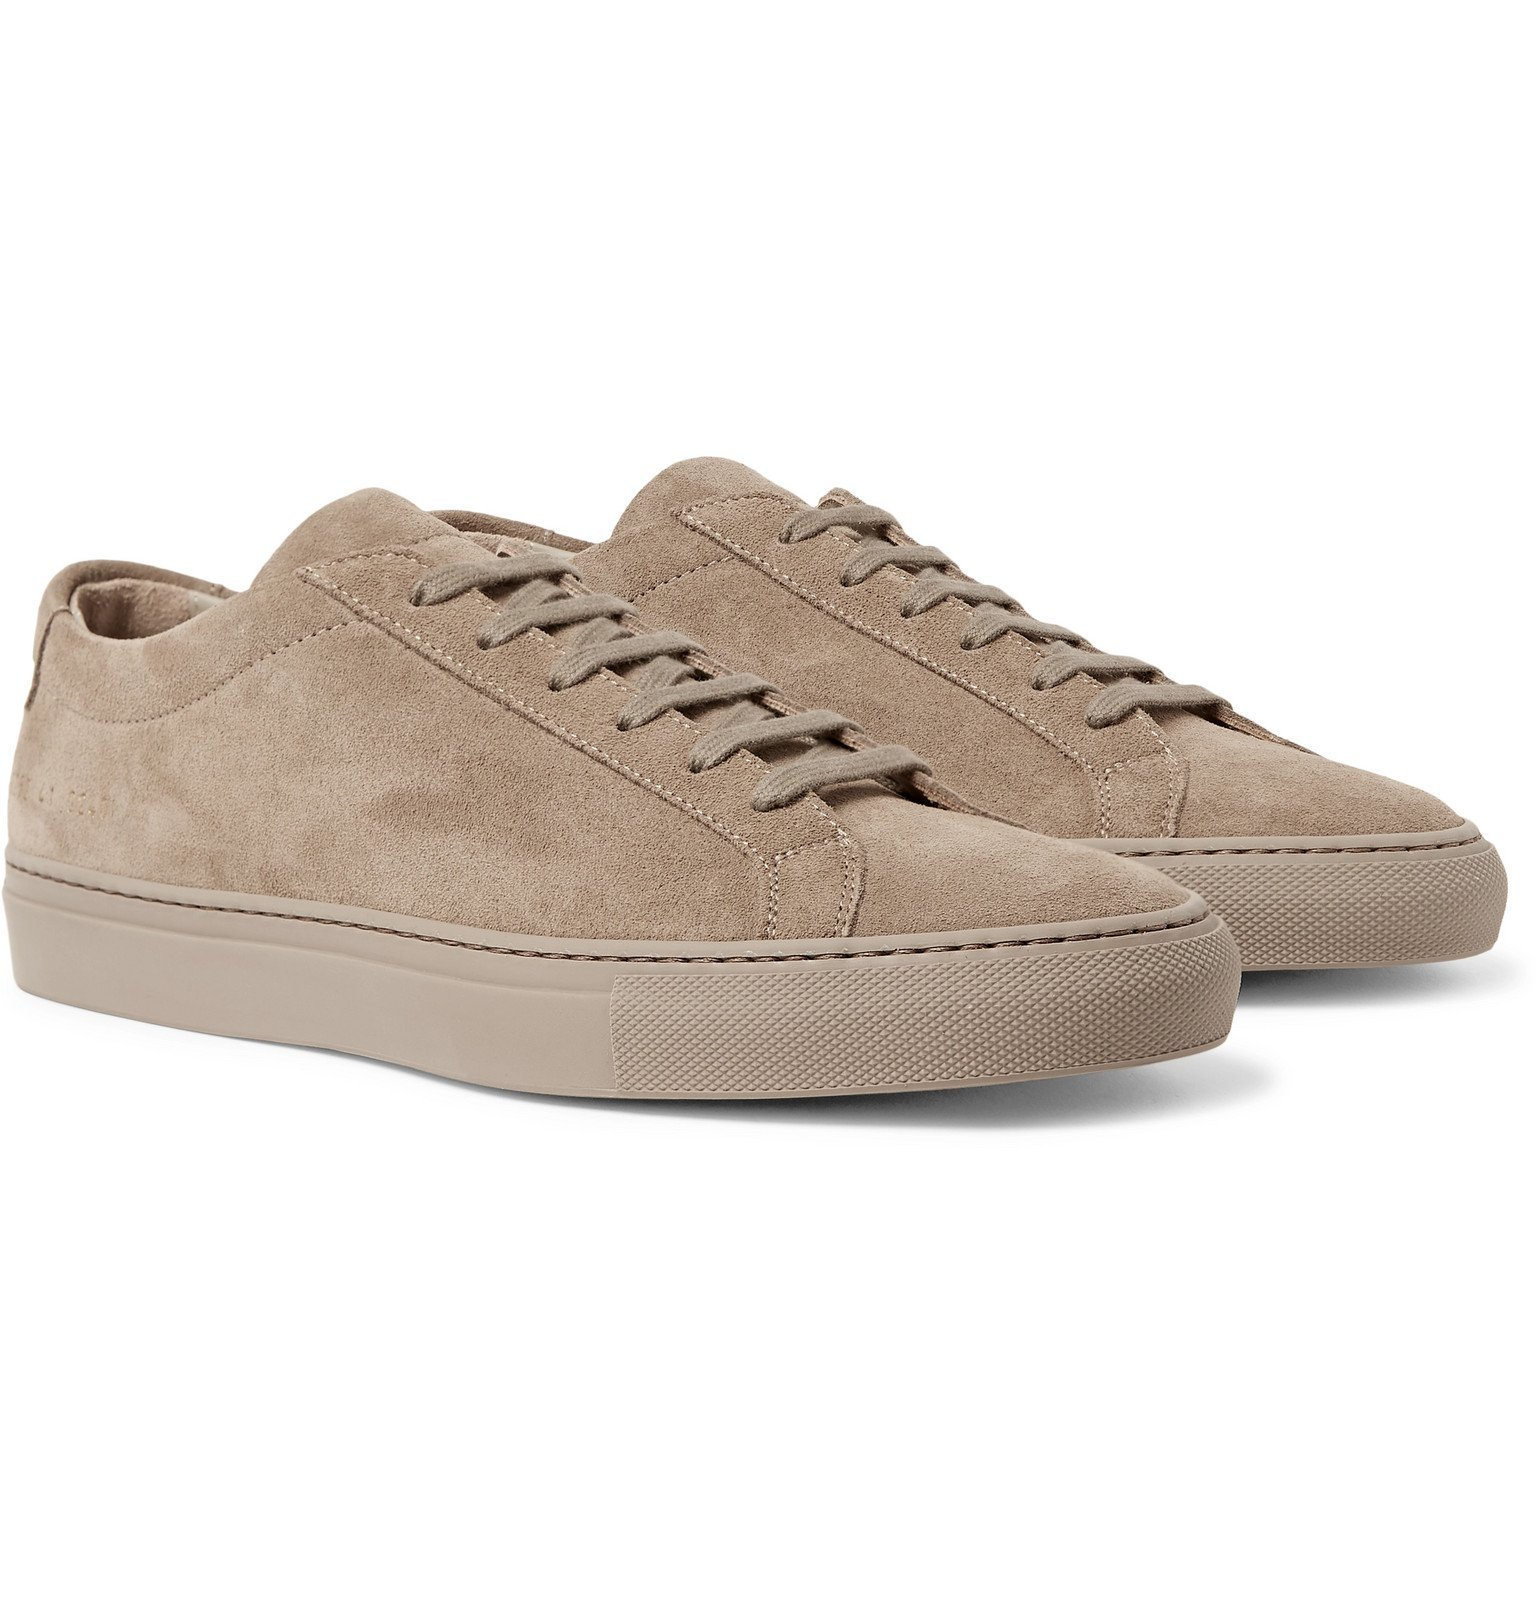 Common Projects - Original Achilles Suede Sneakers - Brown